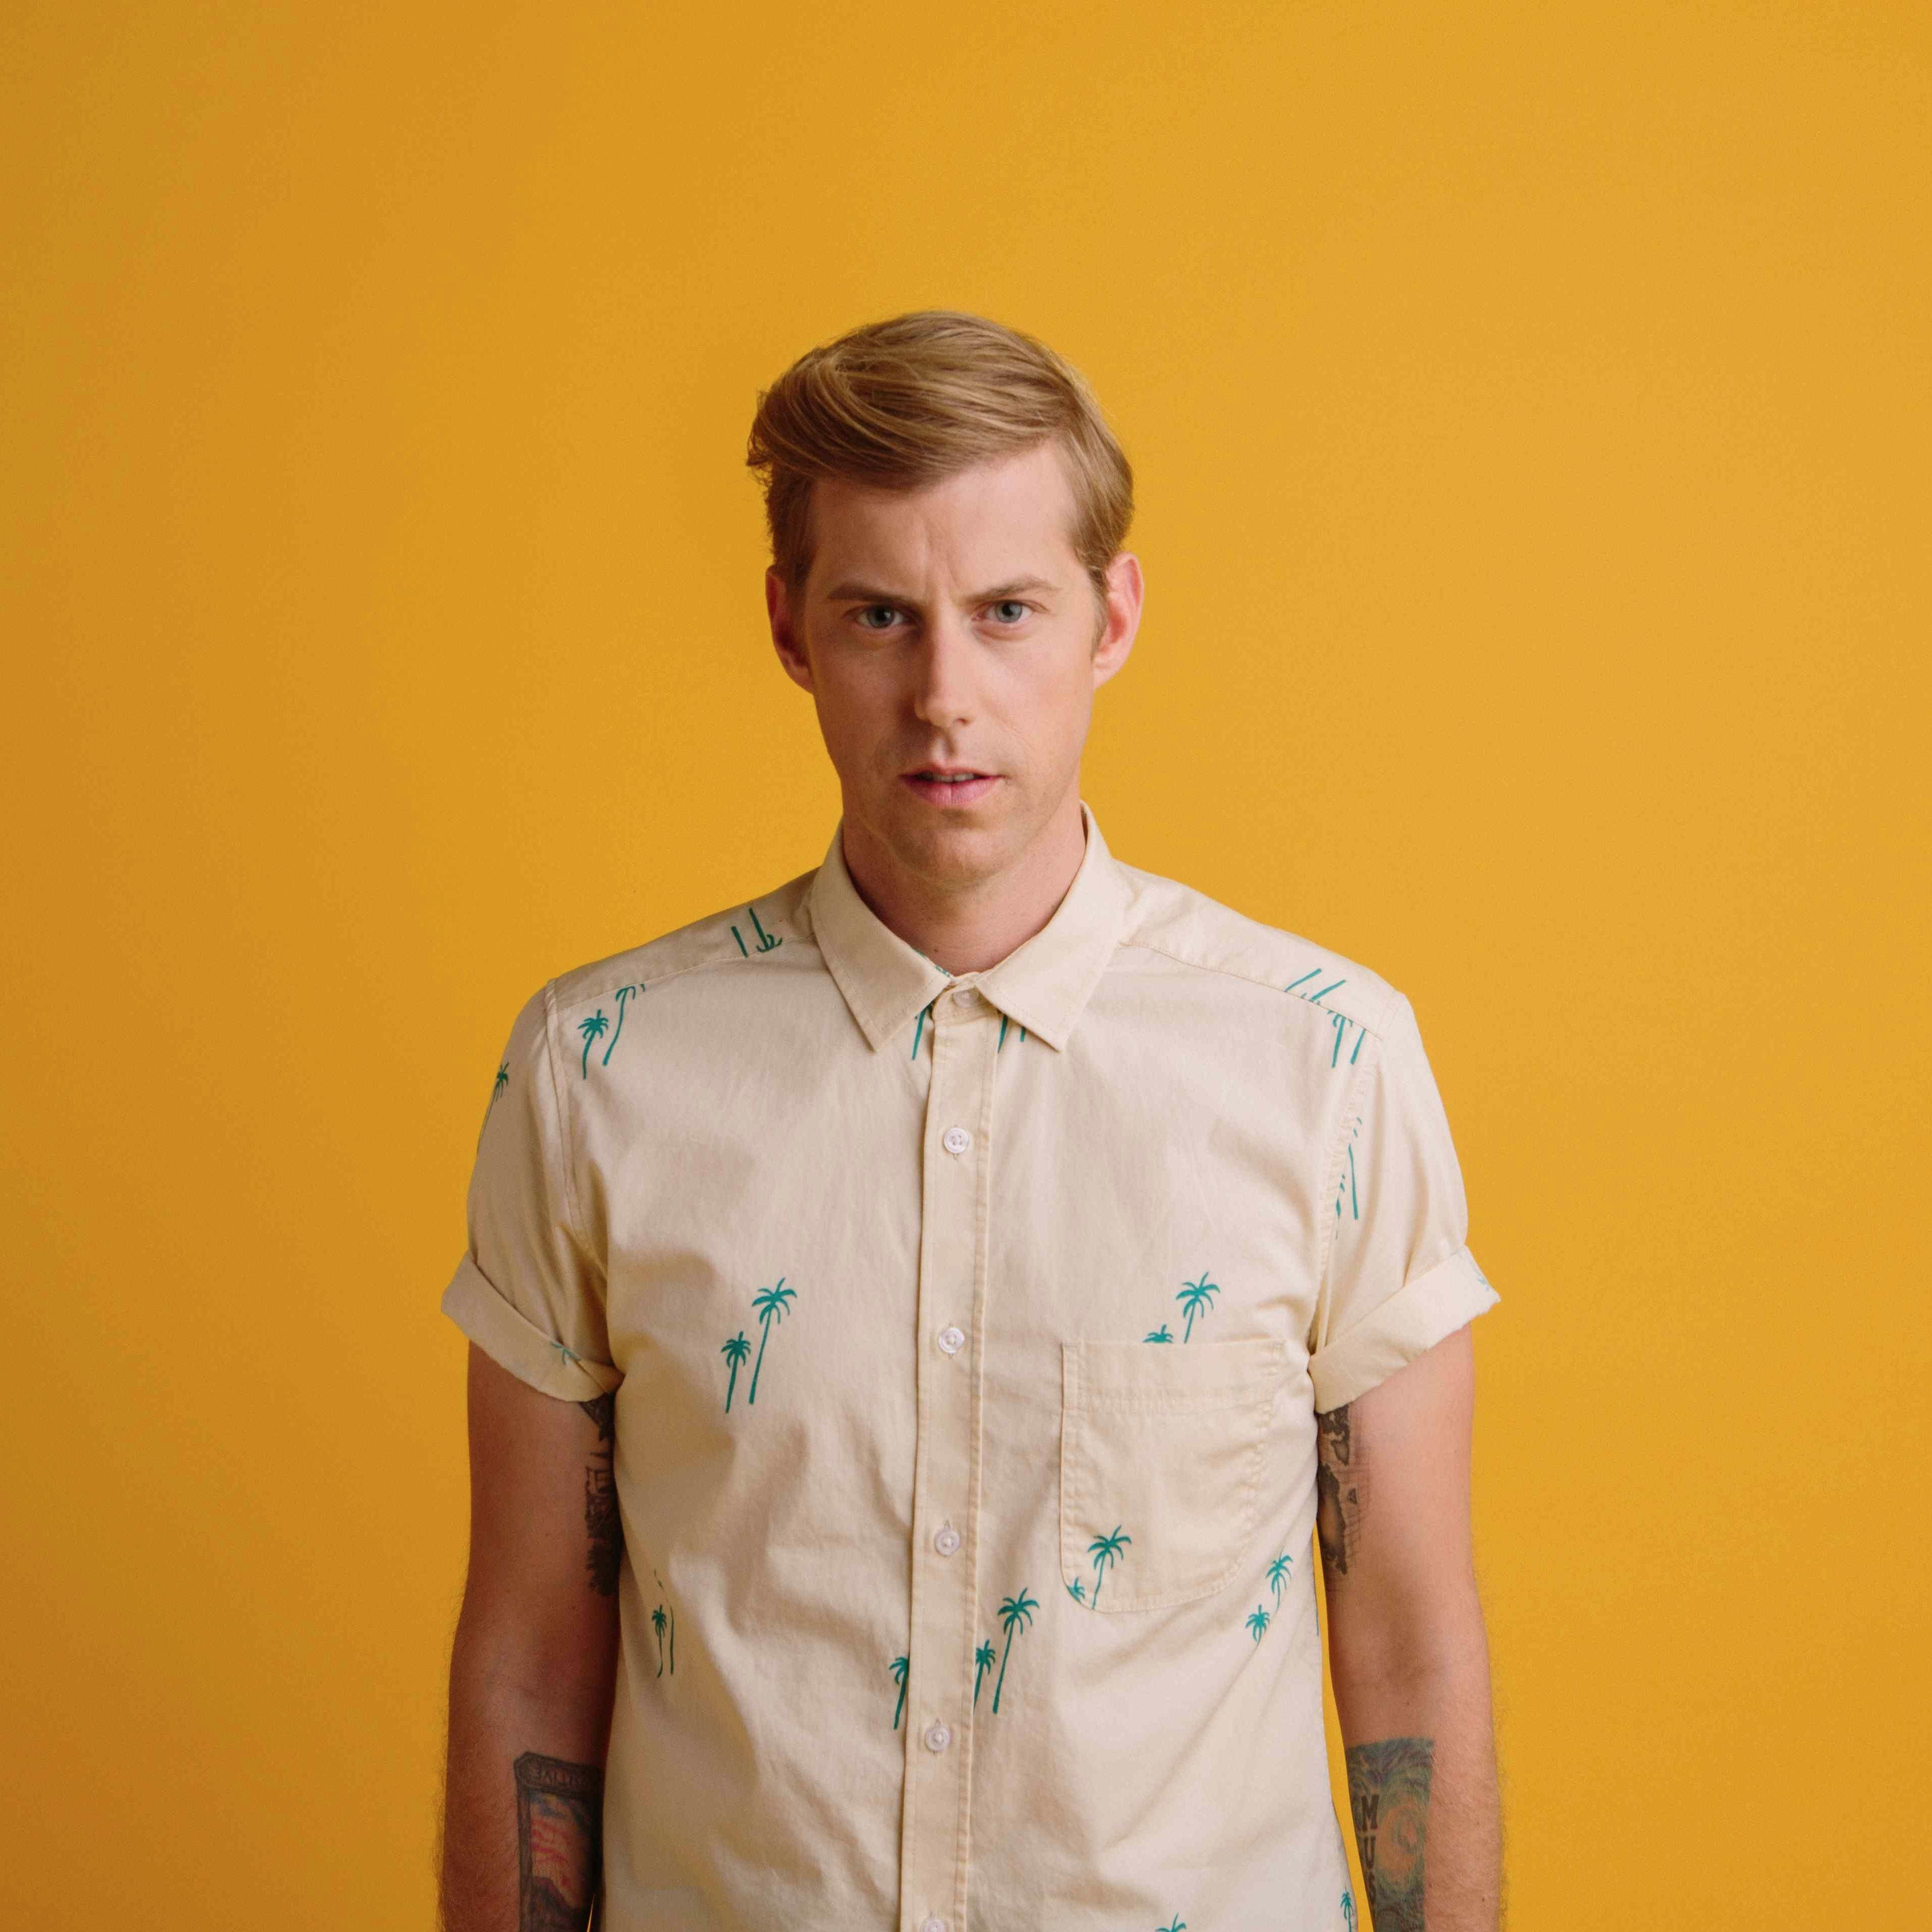 Andrew McMahon (Photo: Andrew McMahon)